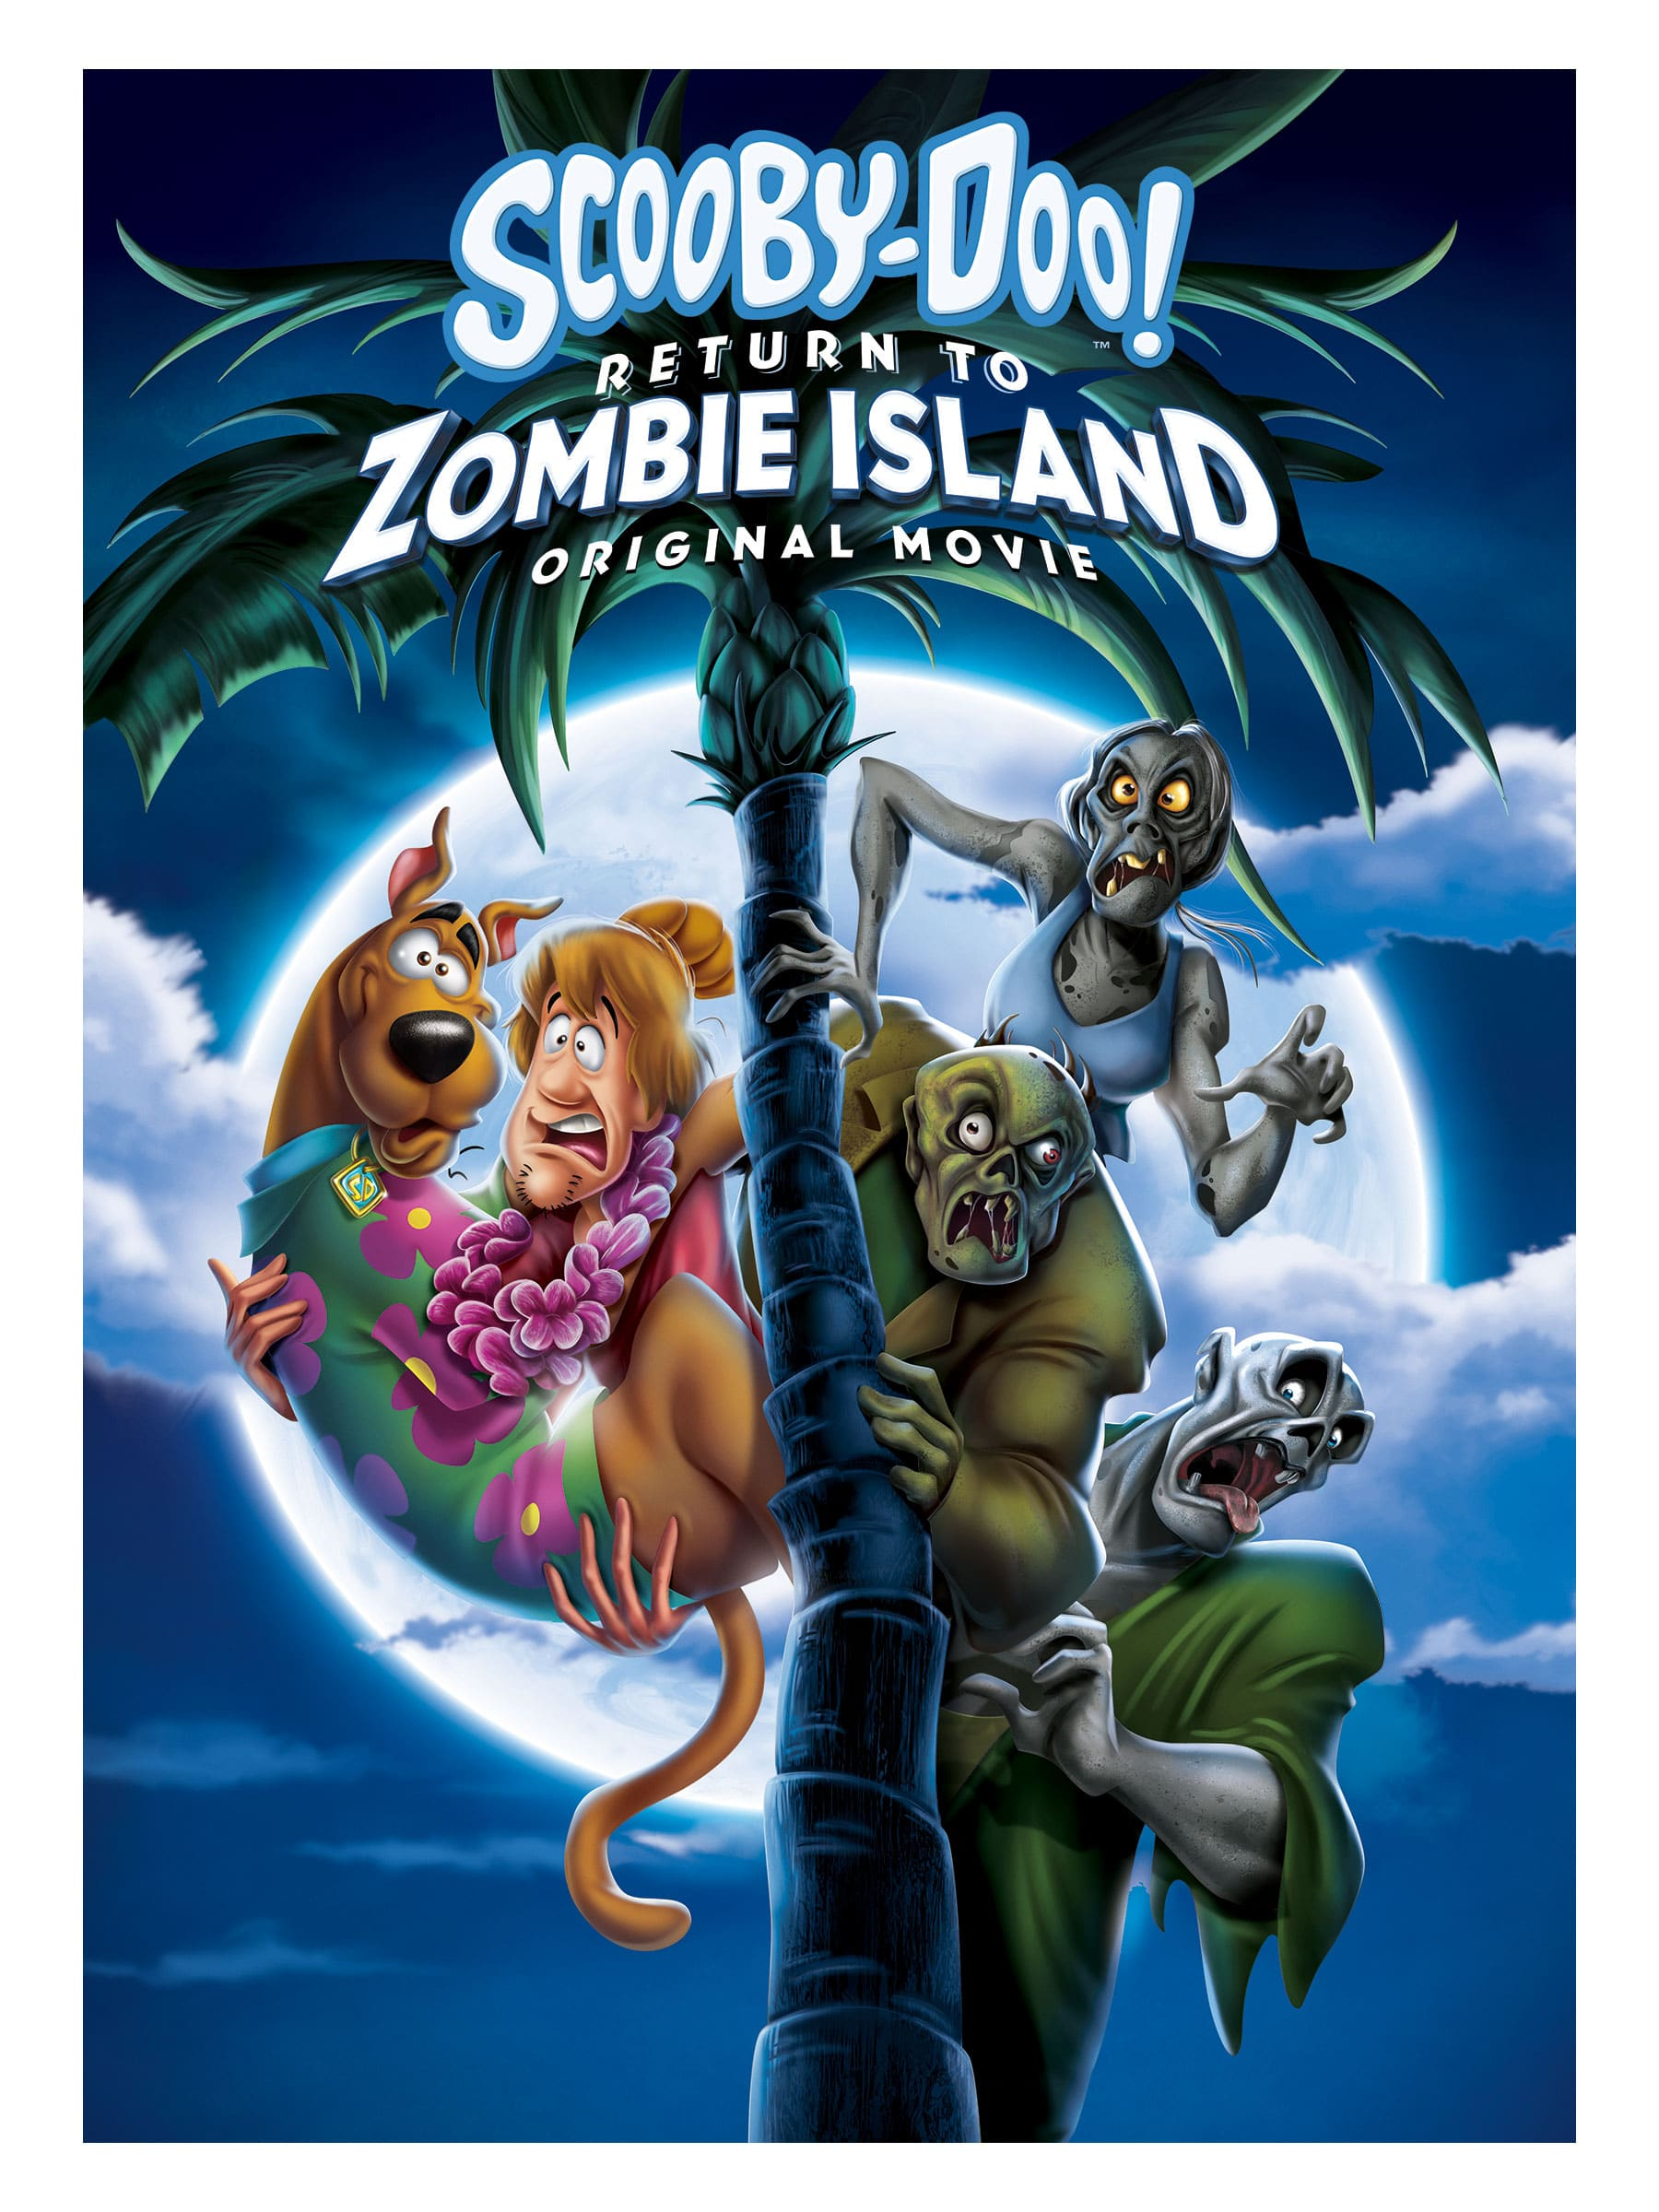 Scooby Doo Return To Zombie Island Cover. Pack your Scooby Snacks and join the Mystery Inc. gang as the teen sleuths embark on a wild and spooky vacation with zombies and cat people on Scooby-Doo! Return to Zombie Island, an all-new, original film. Available on Digital and DVD October 1rst, 2019.